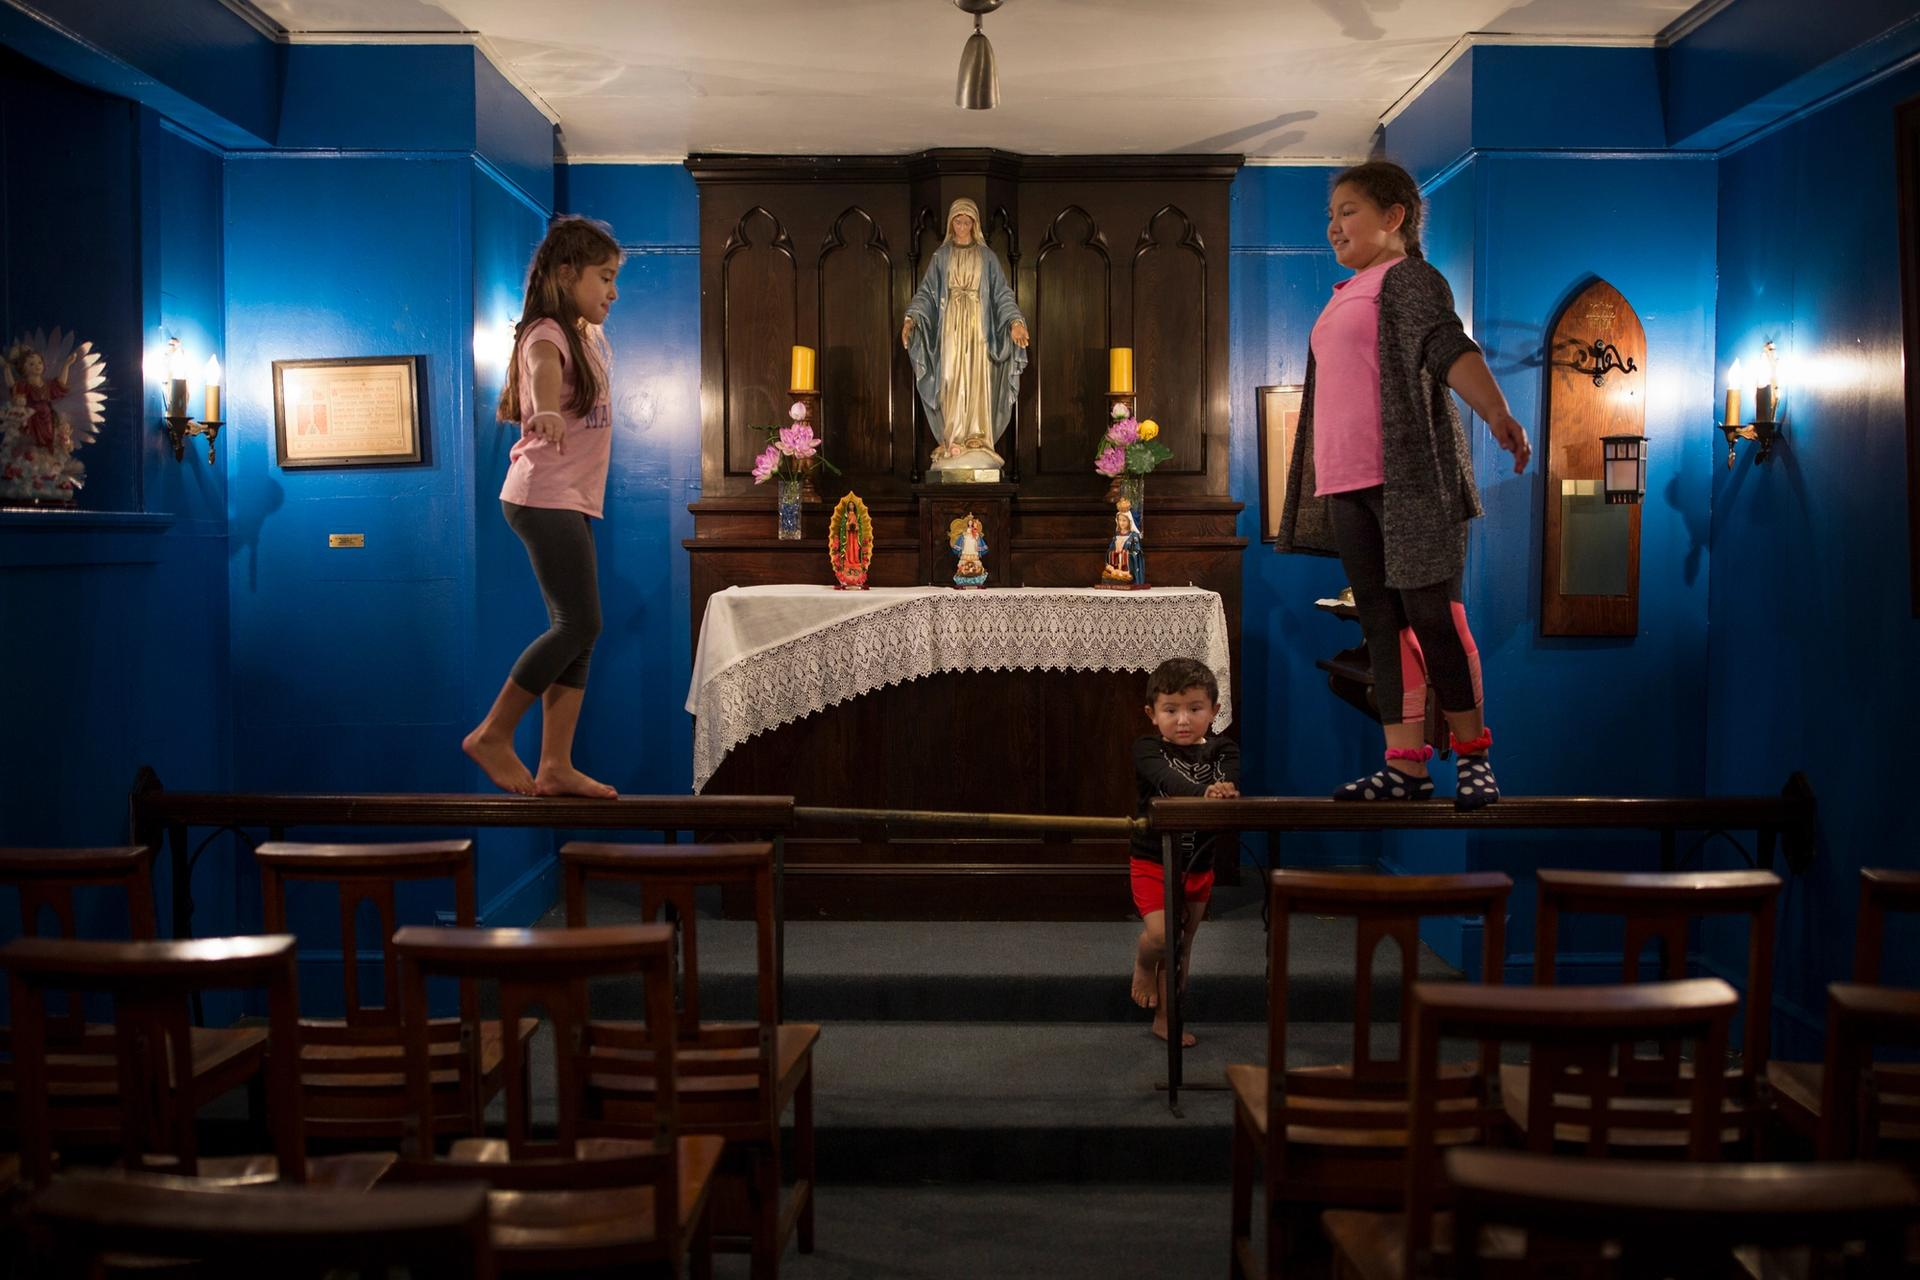 """On the left, Dulce Carvajal swinging with her feet up the sanctuary rail of the Chapel of Holyrood Church in Manhattan, New York, in September 2017, with her sister Dulce and her brother David. """"I like this church, but I miss my house, there we have a big yard with chickens and in the summer my mom sets a plastic pool up for us,"""" Dulce says. Cinthya Santos Briones"""